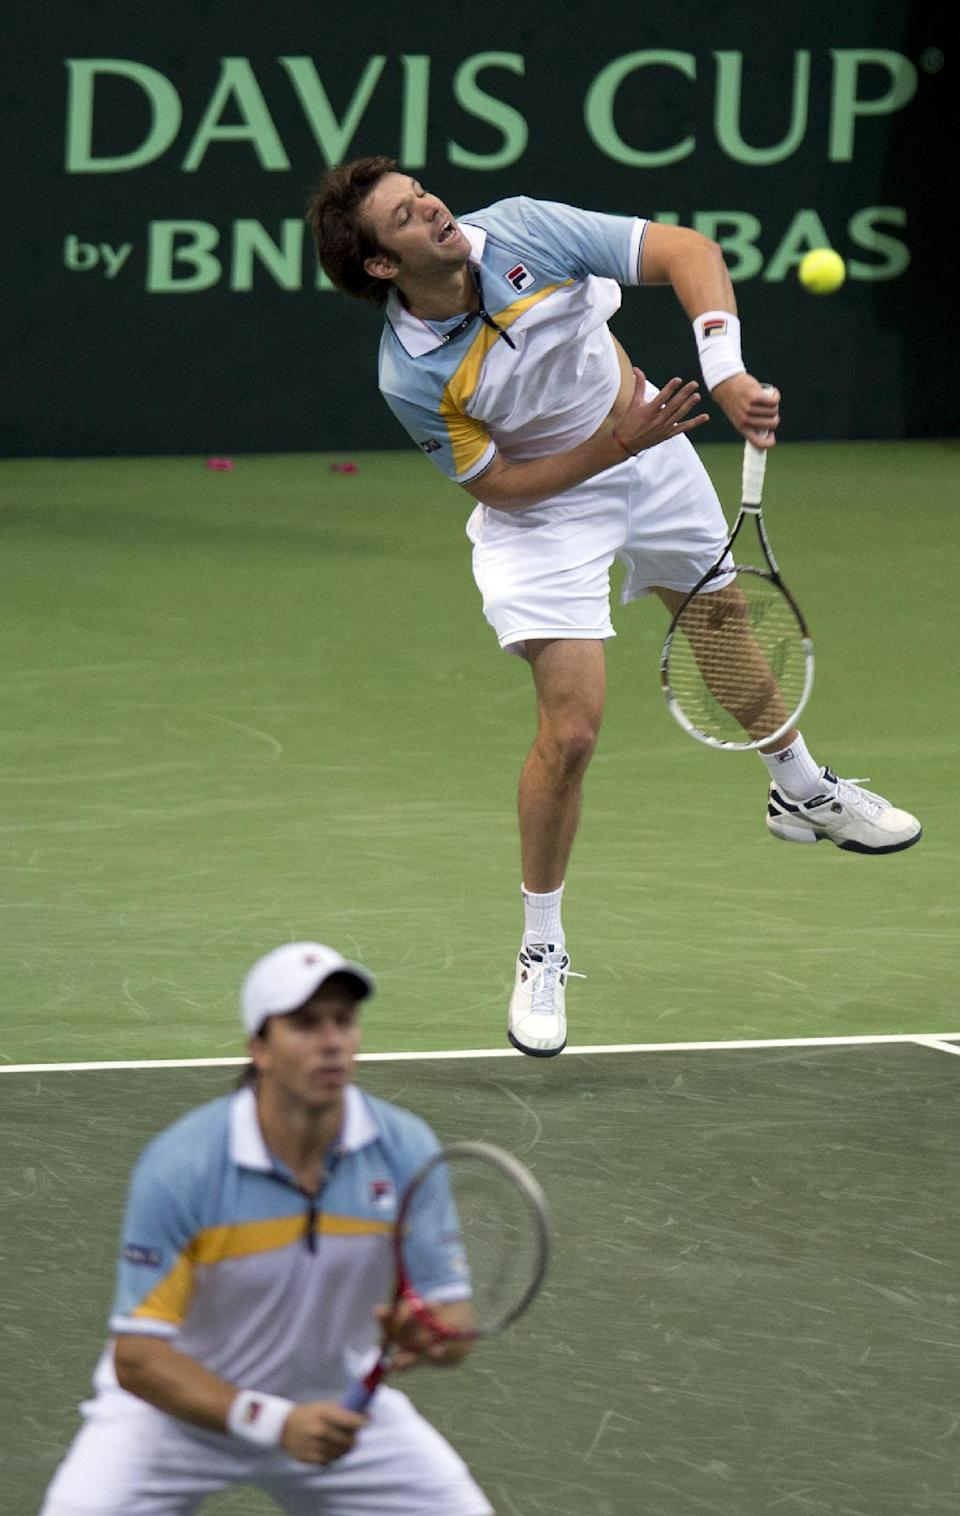 Czechs oust Argentina to reach Davis Cup final